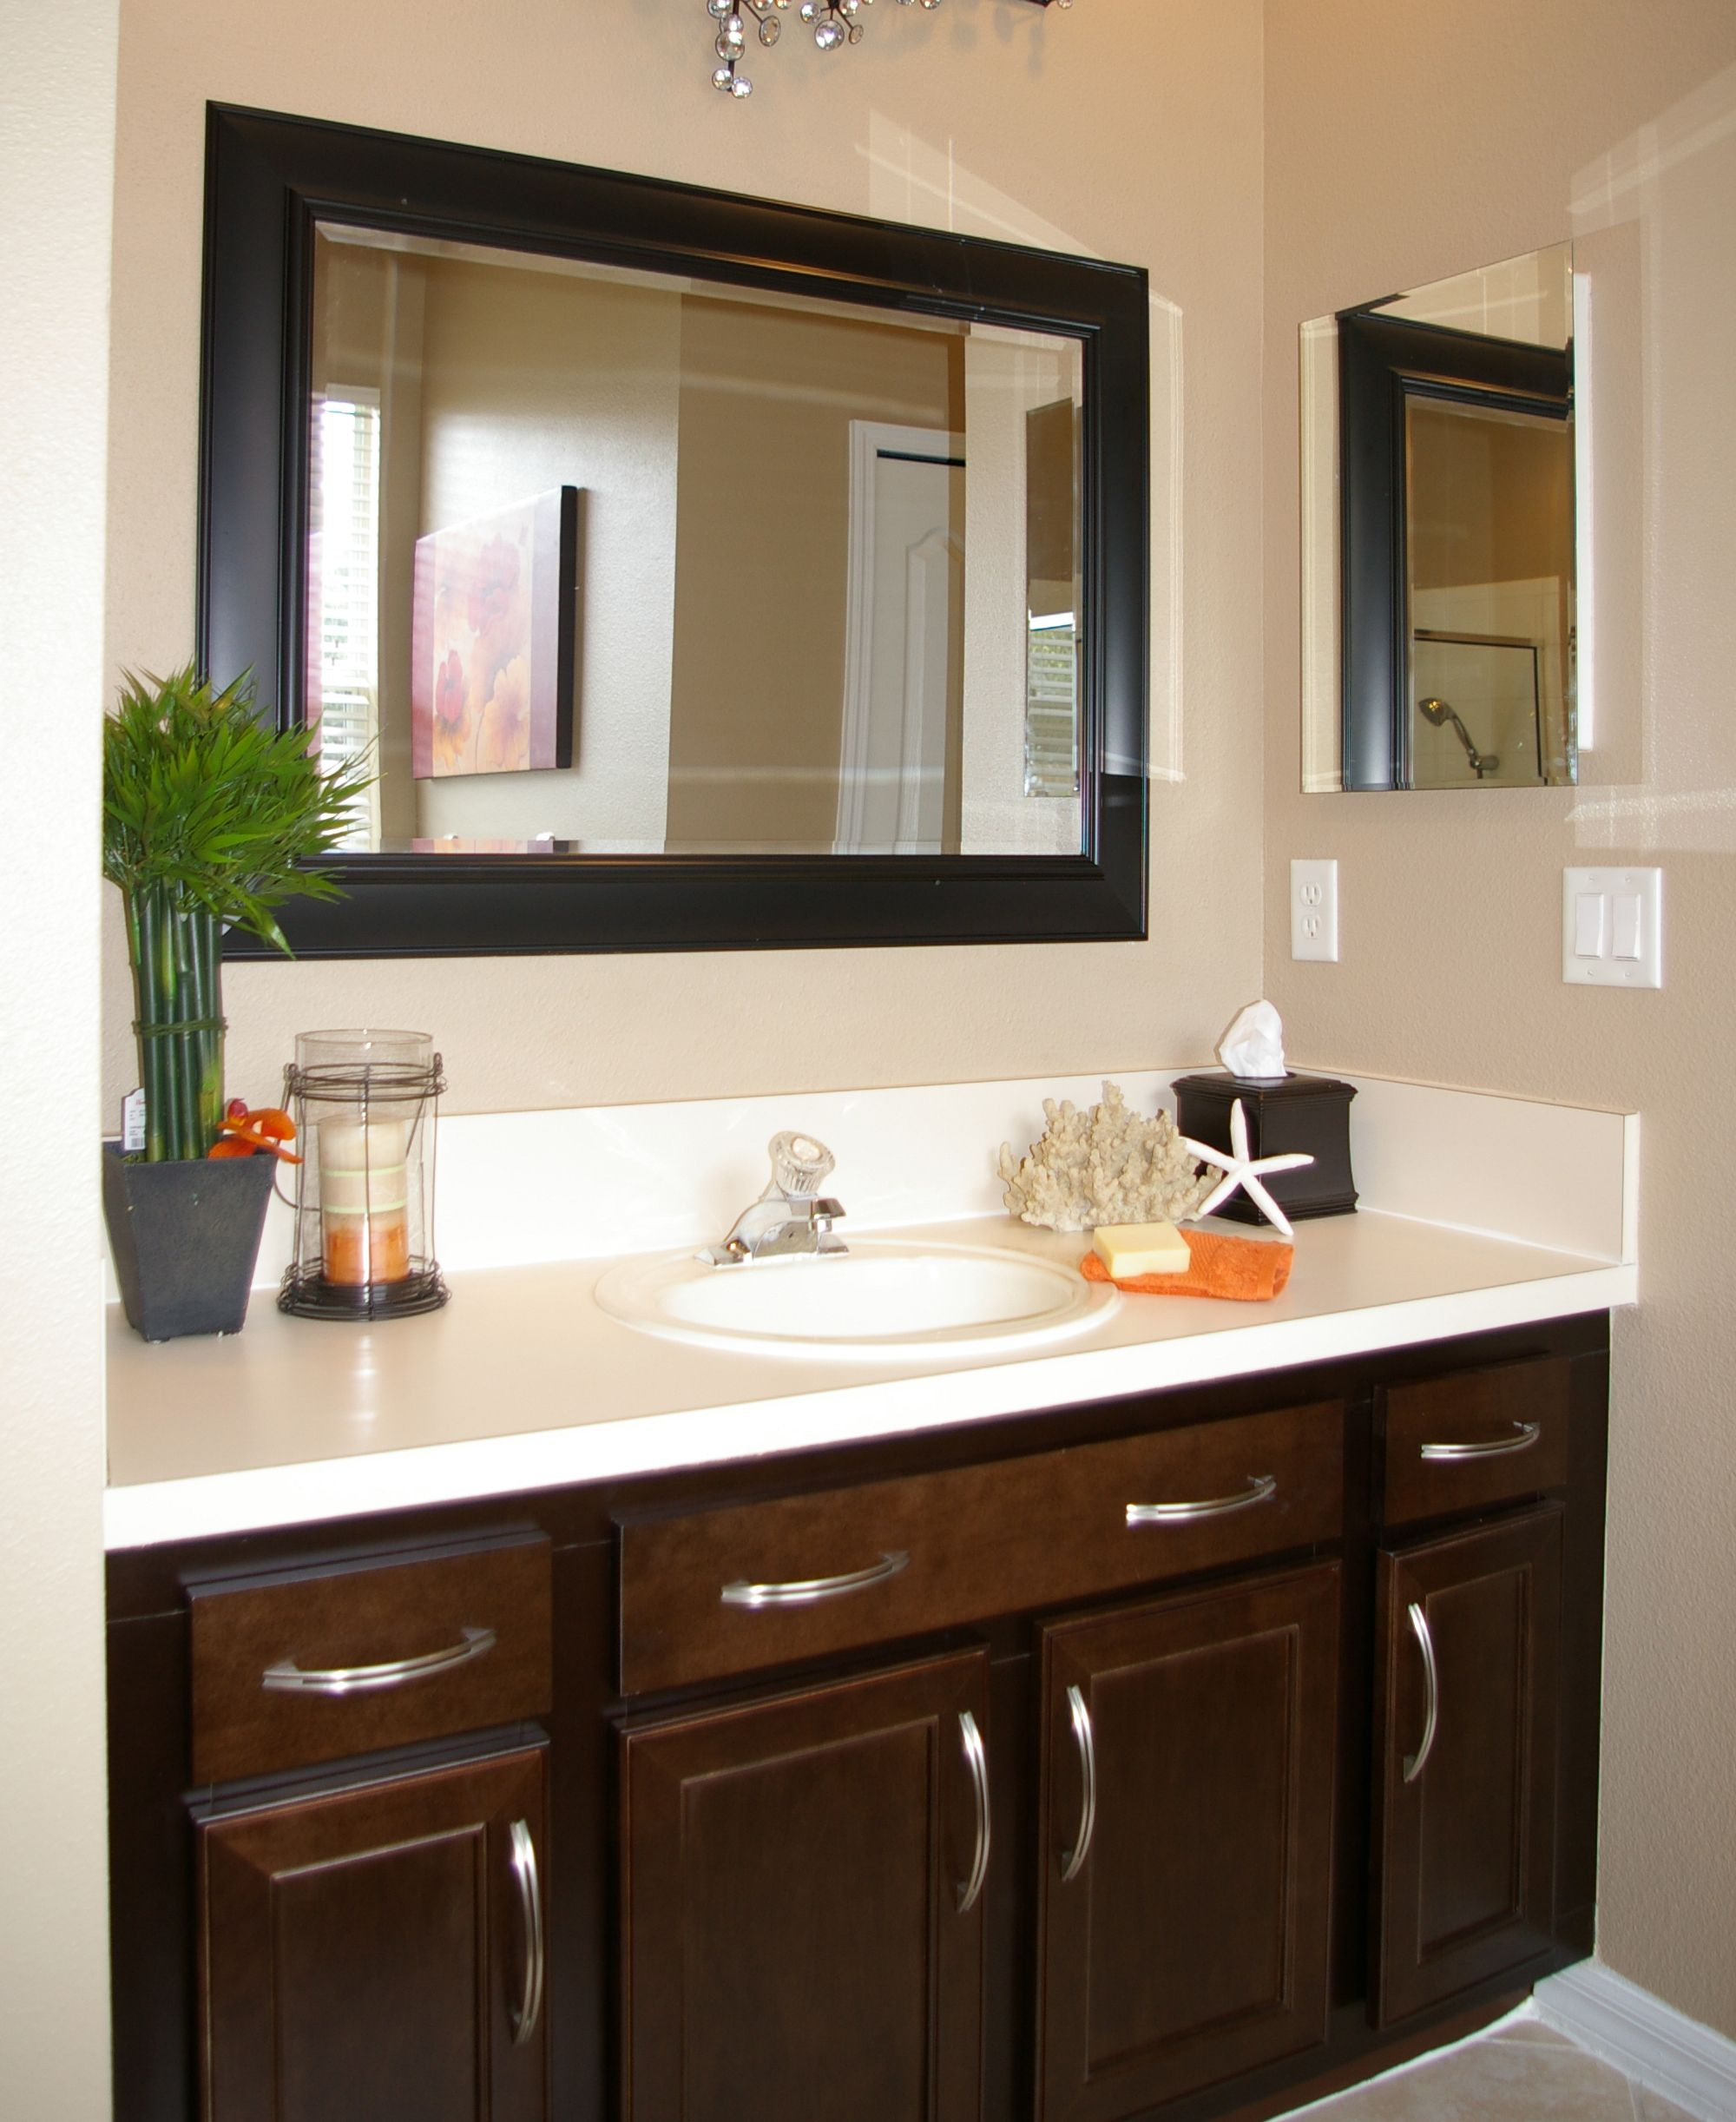 small master bathroom ideas before after design distinctions refacing framed mirror